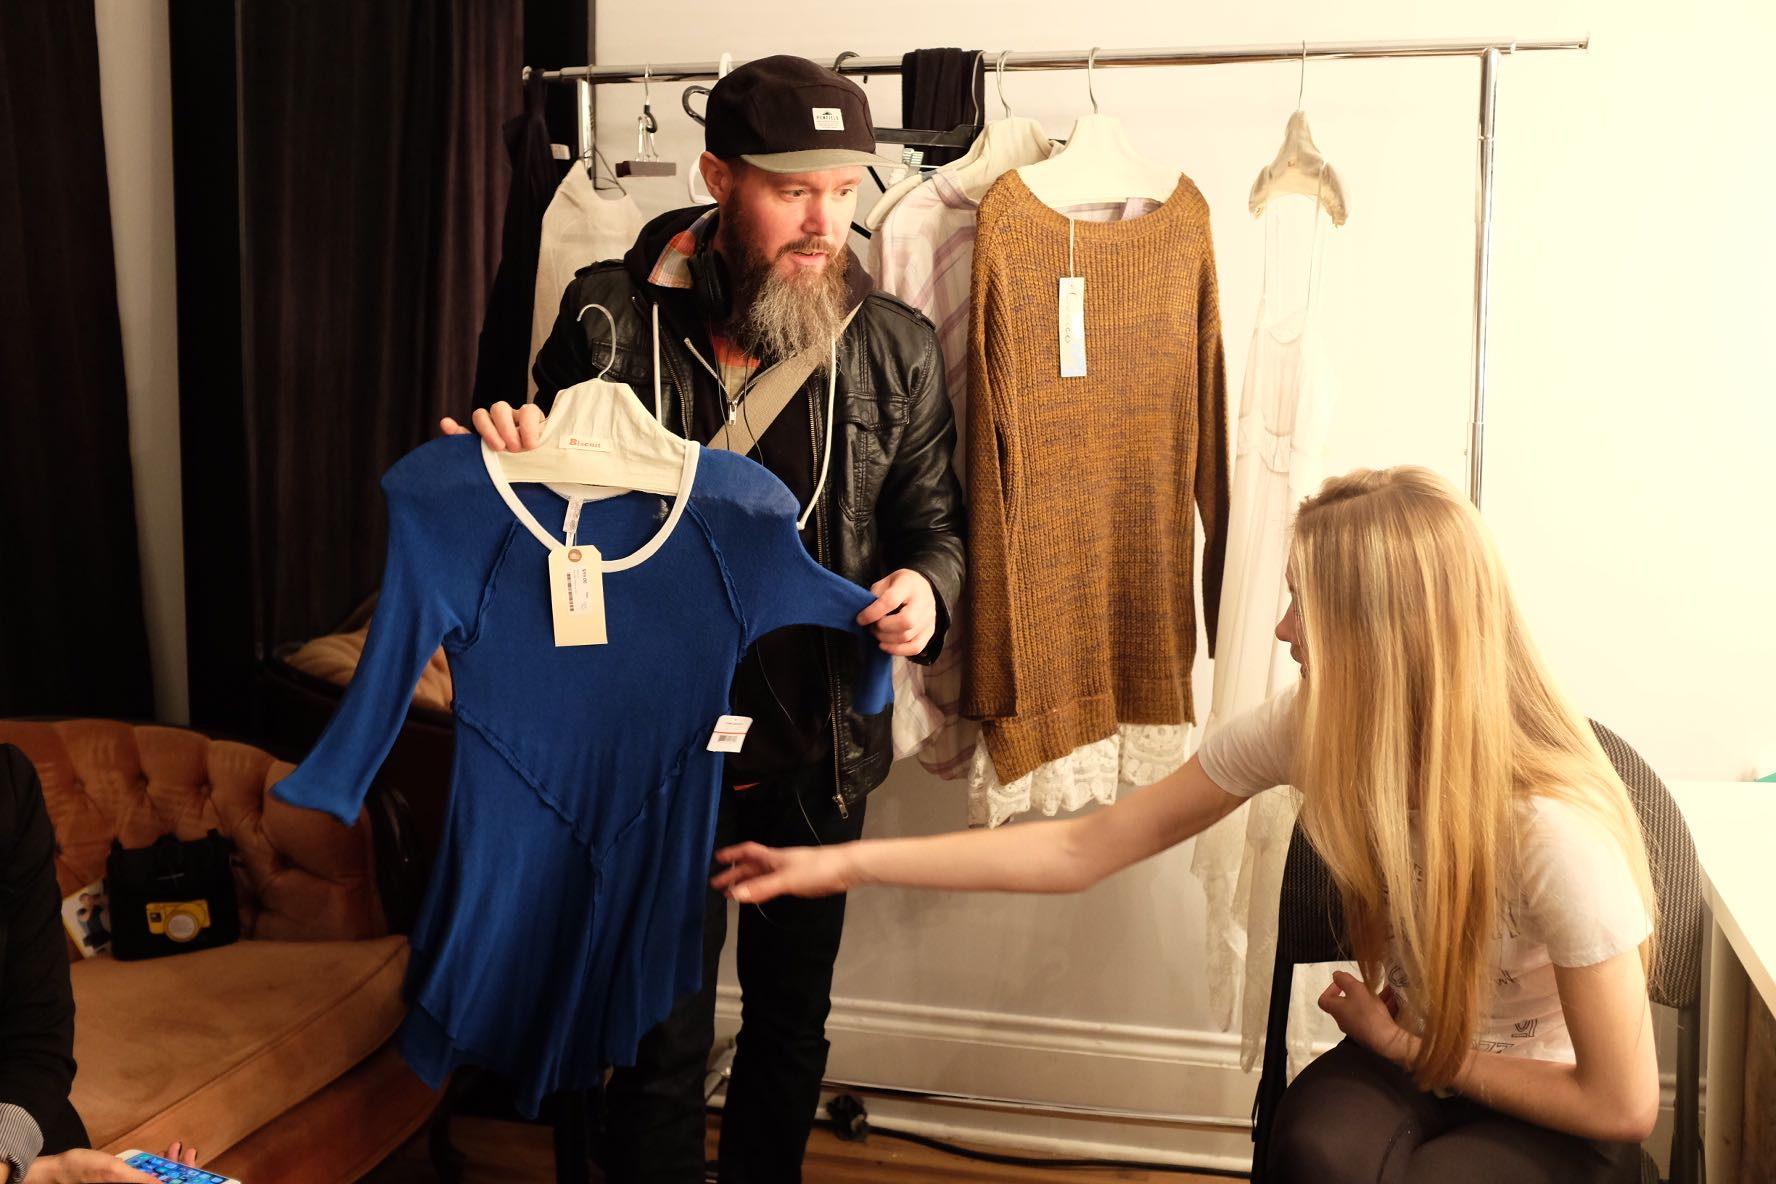 Stylist Jacob Connell showing off some of the Free People garments while Shannon gets makeup done.